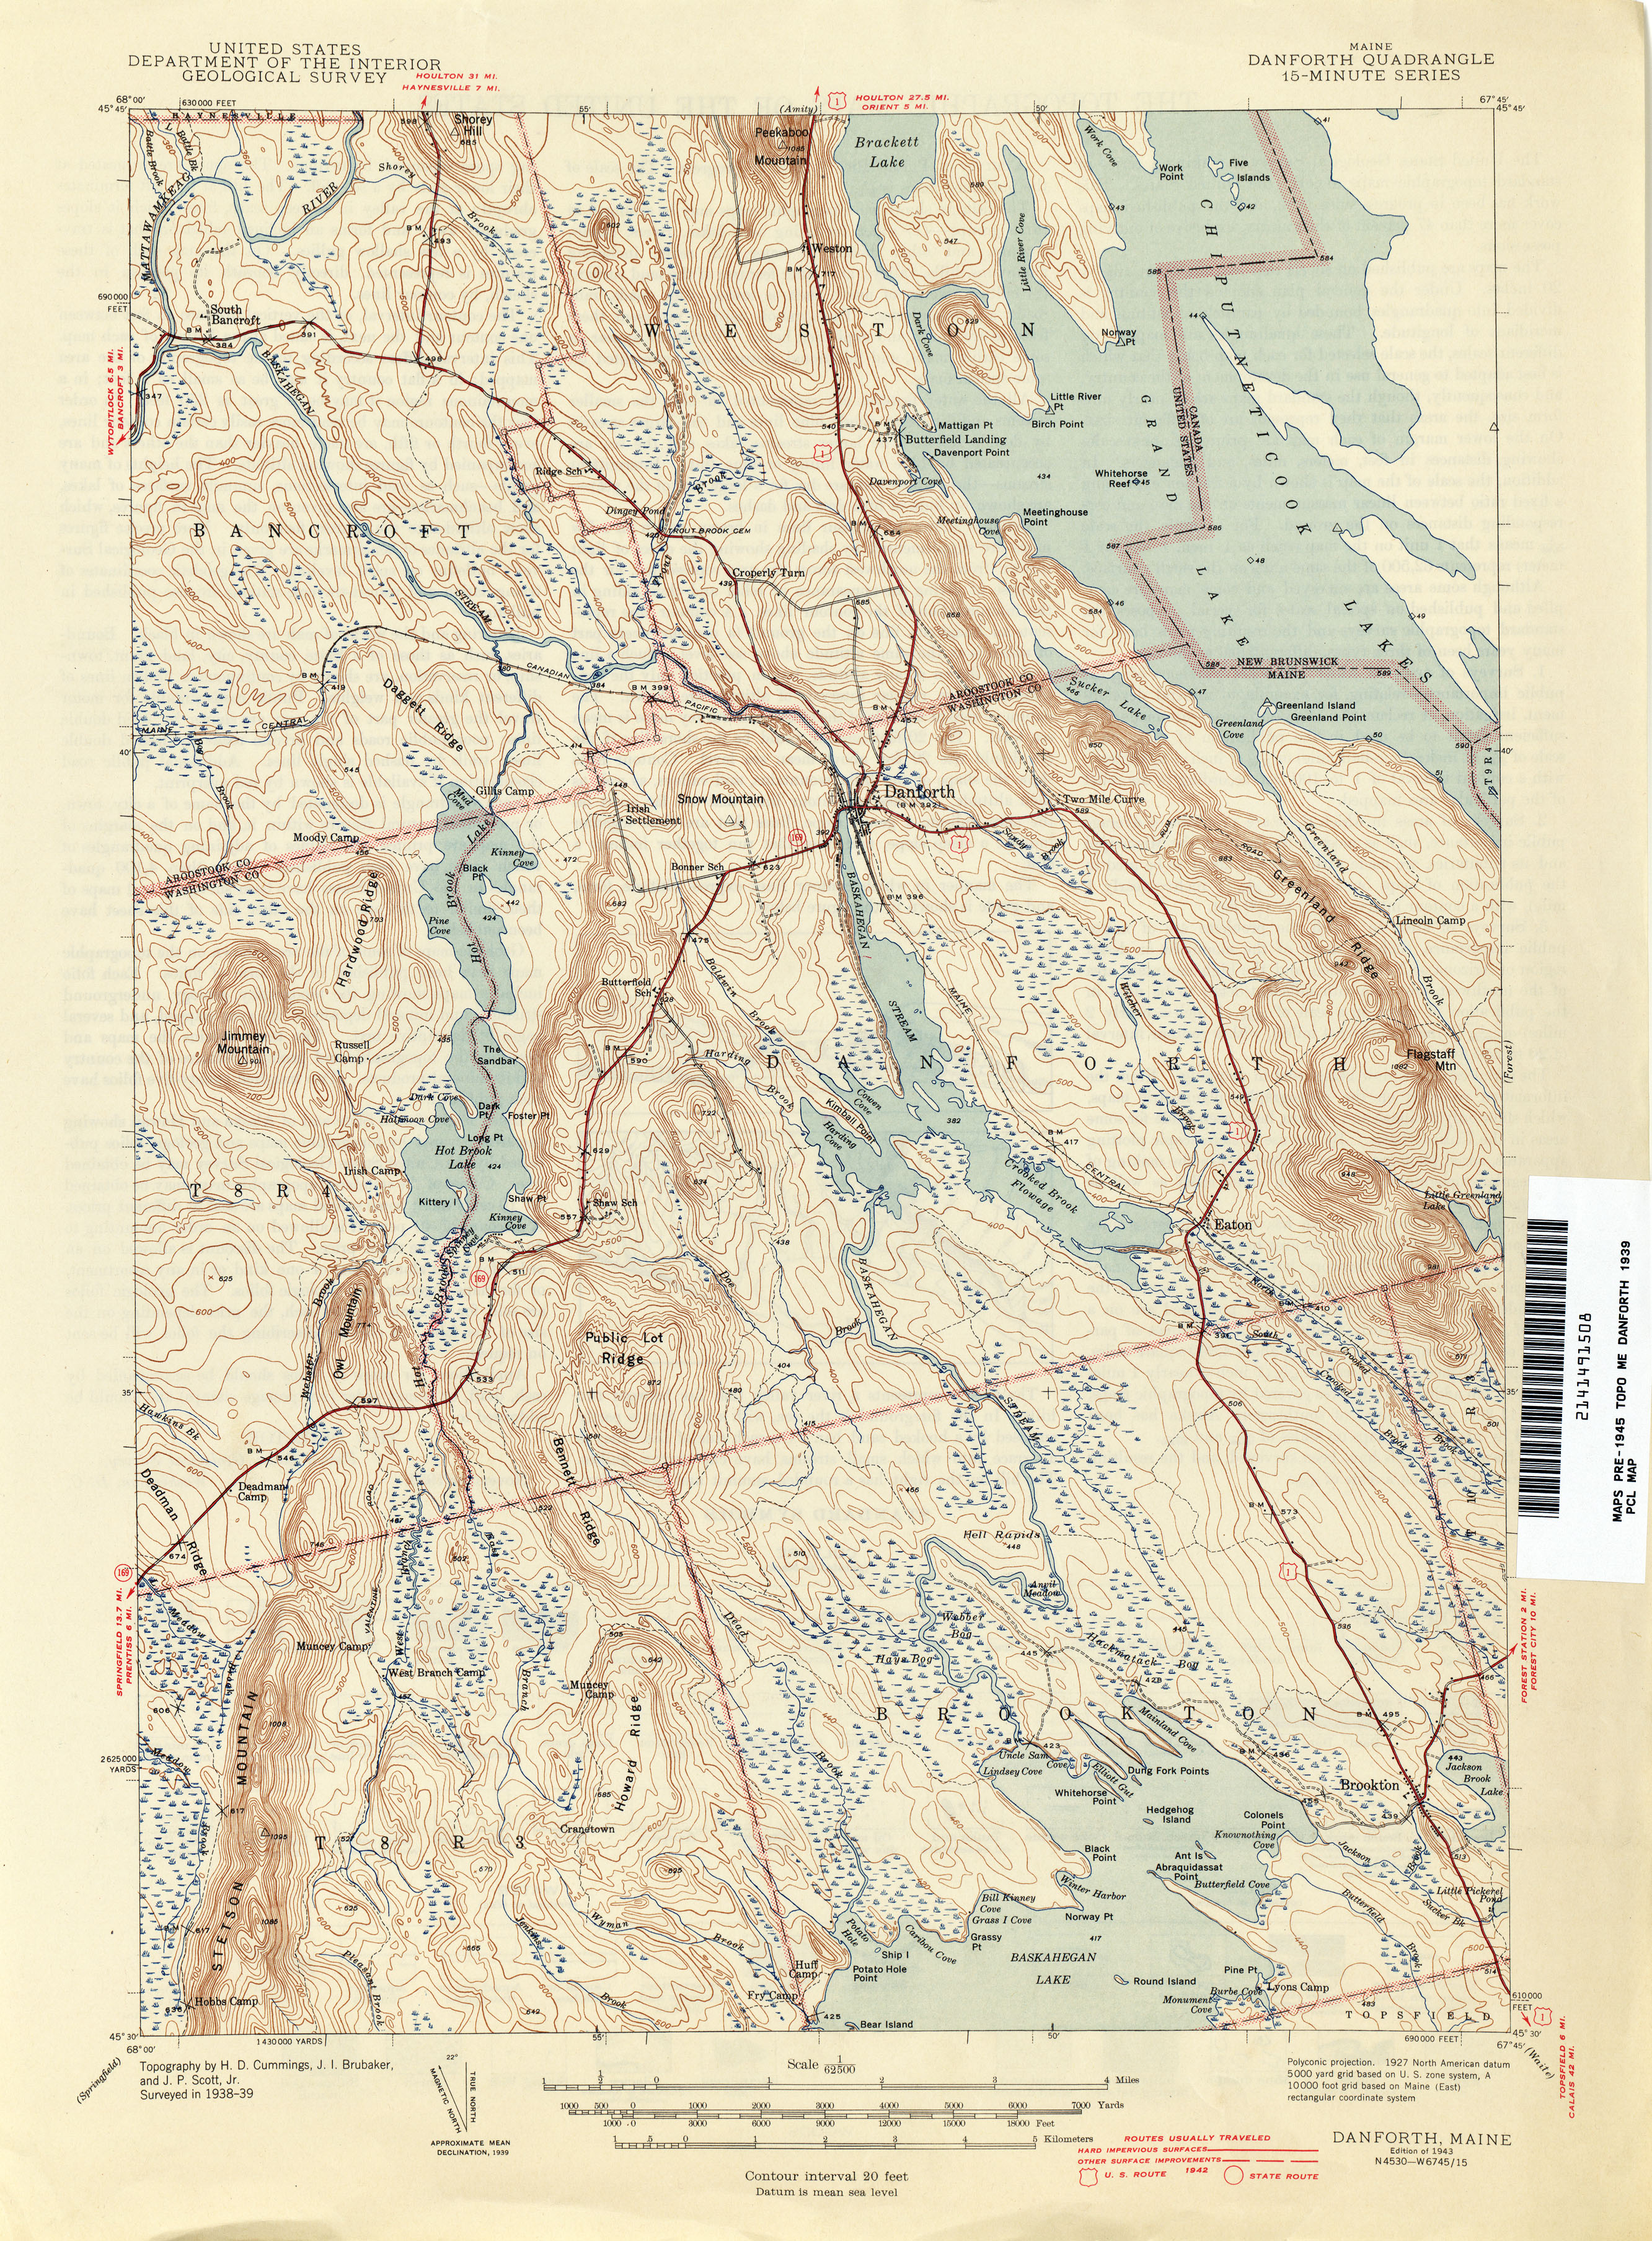 Danforth Maine Map.Maine Historical Topographic Maps Perry Castaneda Map Collection